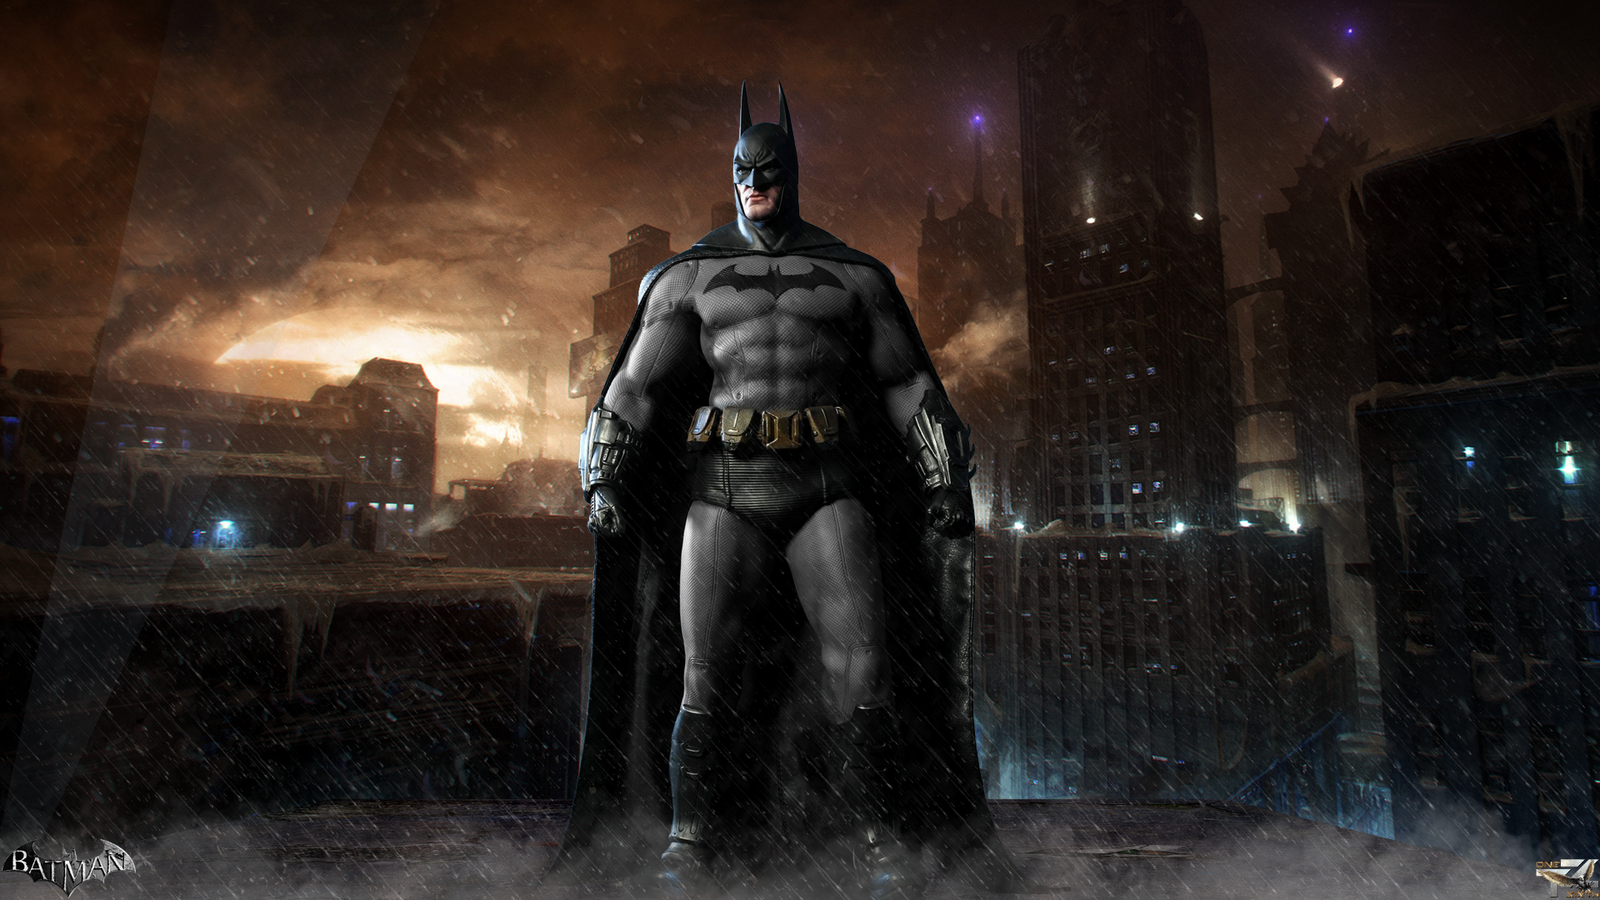 Batman Arkham City Hot Toys Full Hd Wallpaper By Davian Art